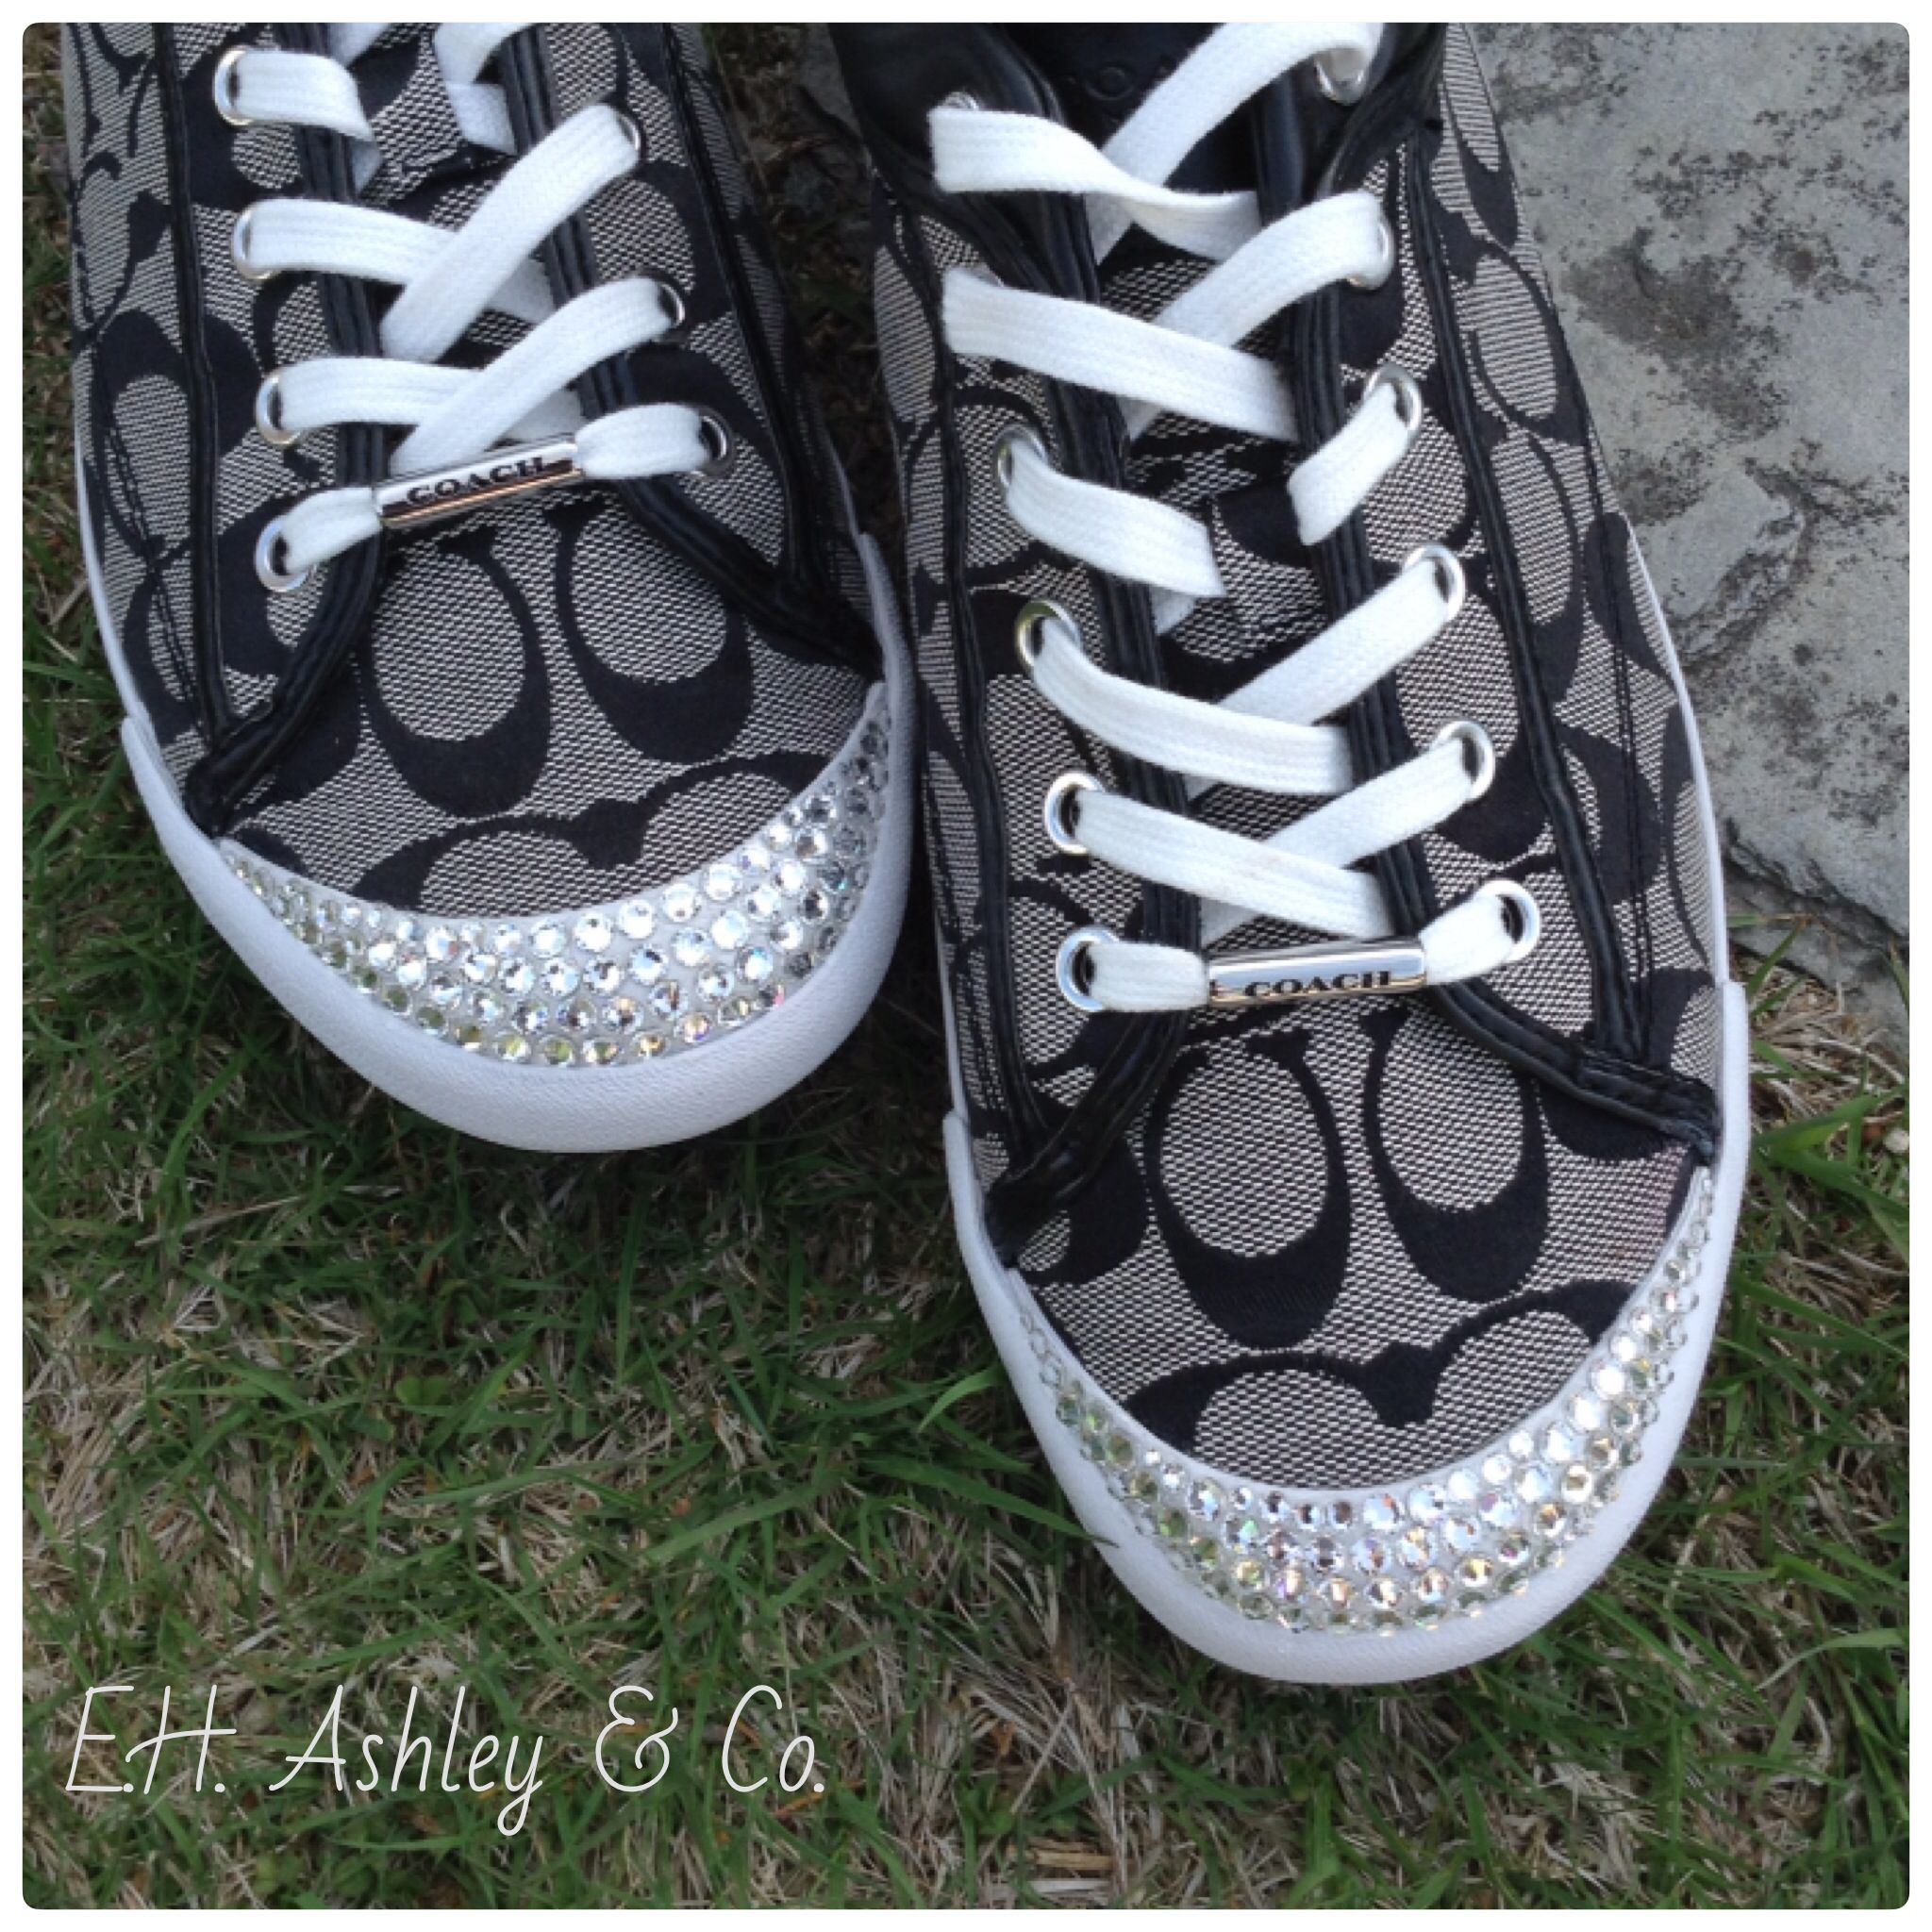 Swarovski ELEMENTS Flatbacks can make anything great look even more fabulous, by just adding a little bling!  E.H. Ashley always carries a full stock of Flatbacks! www.ehashley.com #flatbacks #blingshoes #swarovski